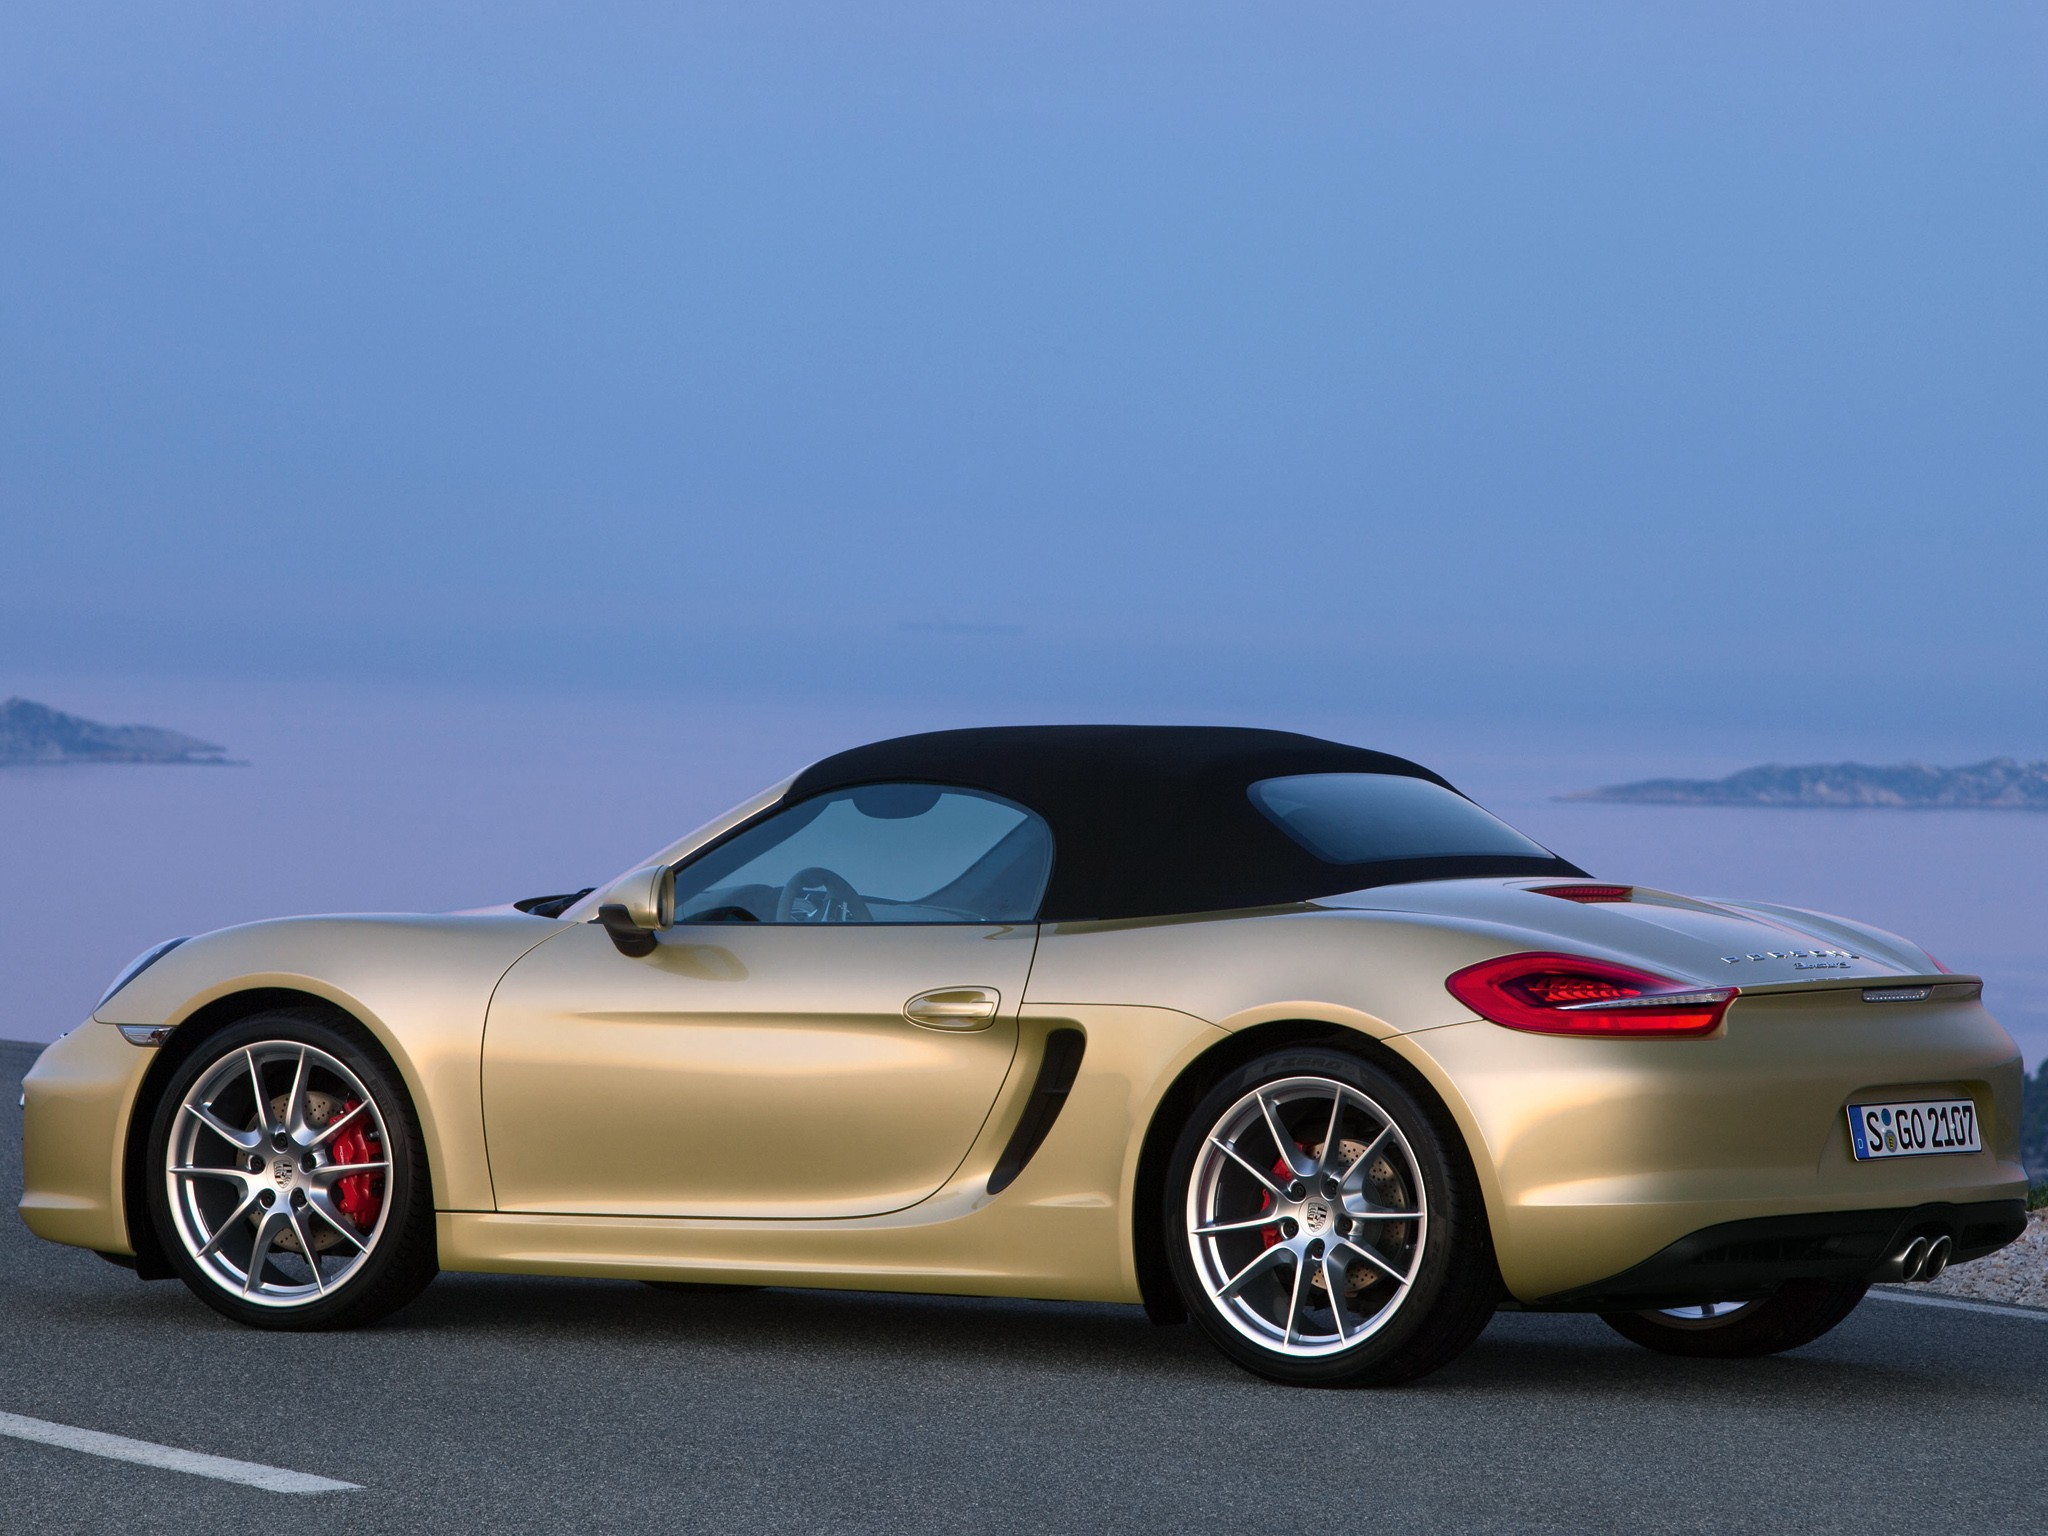 porsche boxster s 981 specs photos 2012 2013 2014. Black Bedroom Furniture Sets. Home Design Ideas